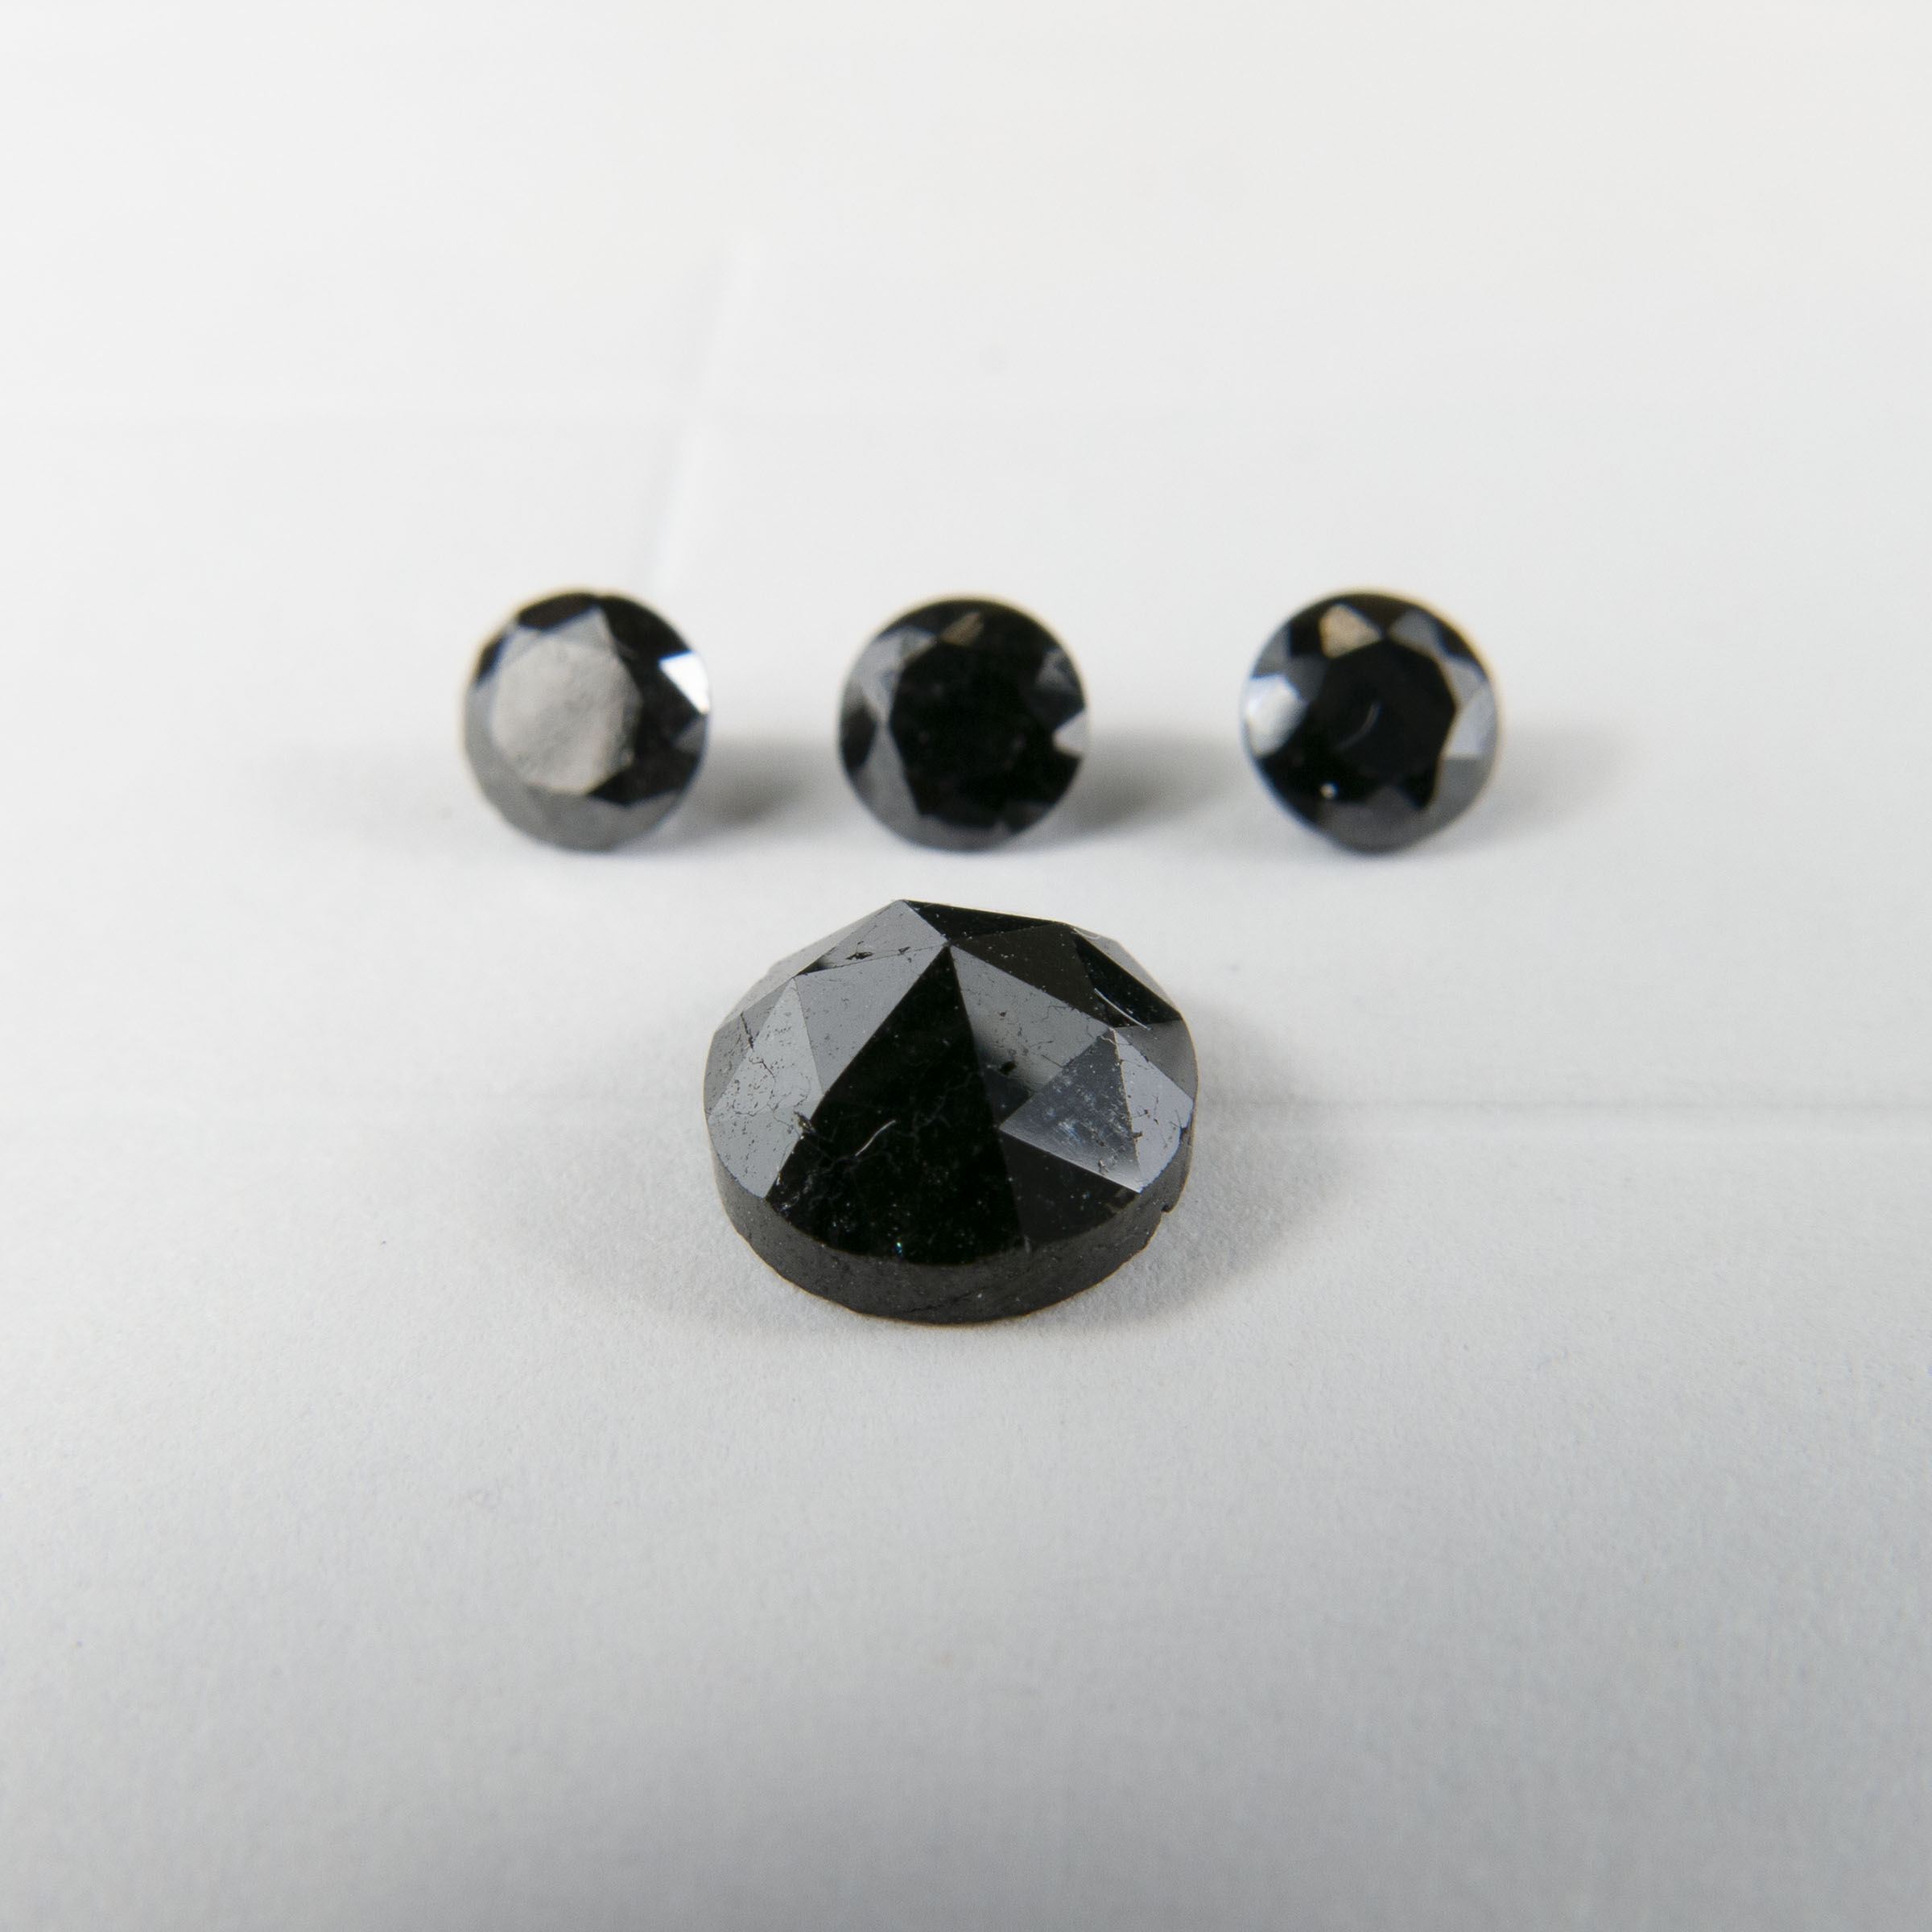 Rose Cut And 3 Full Cut Black Diamonds